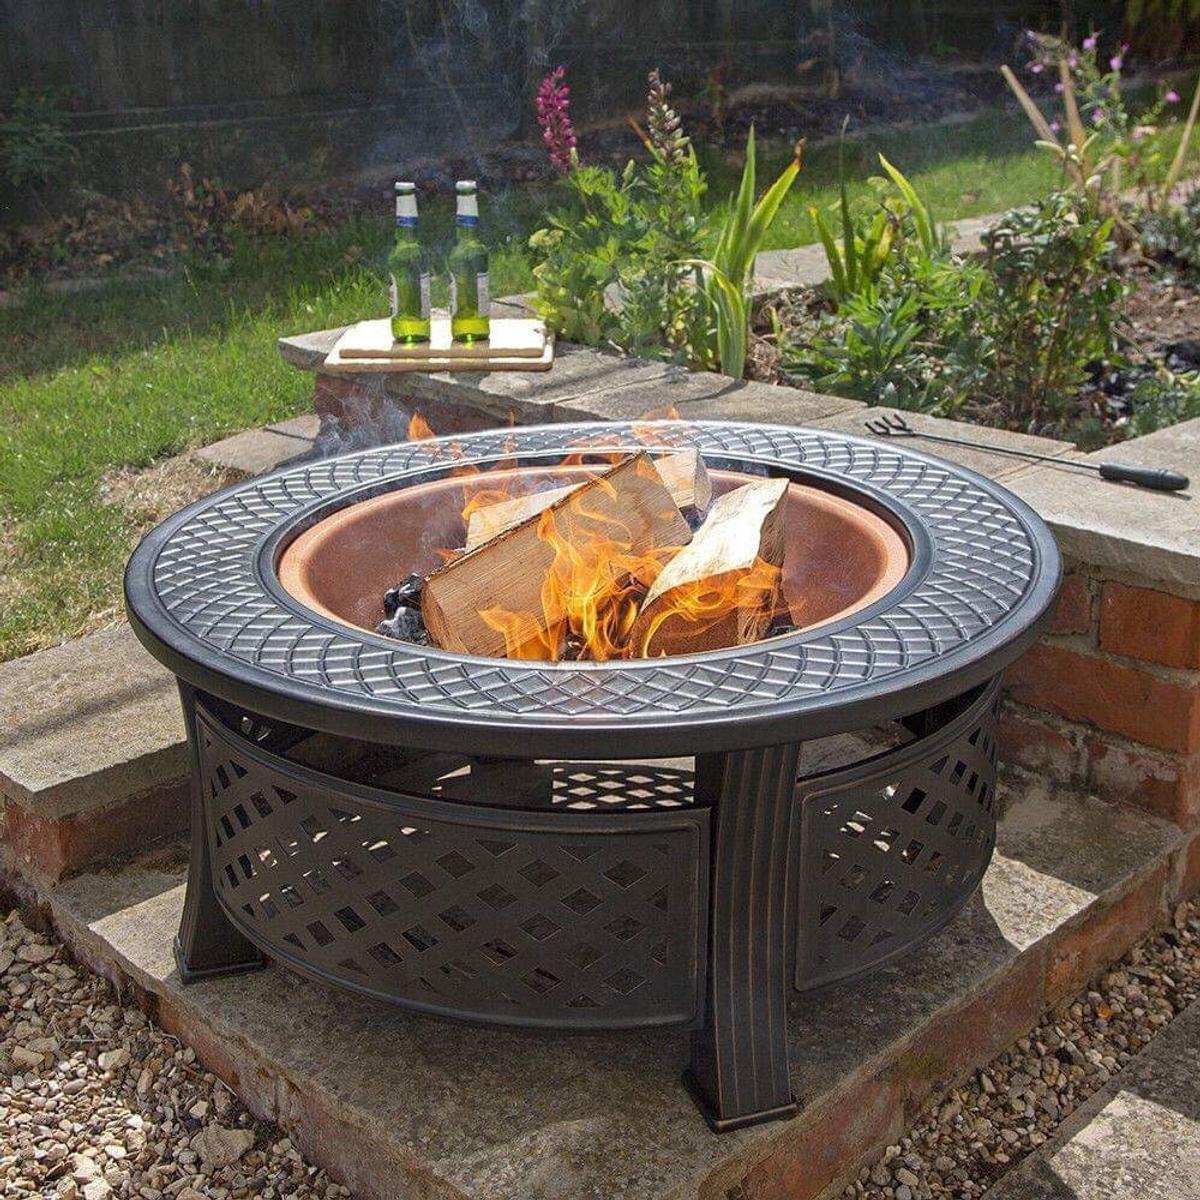 Copper Round Steel Firepit Outdoor Chimenea In Ng7 Nottingham For 70 00 For Sale Shpock